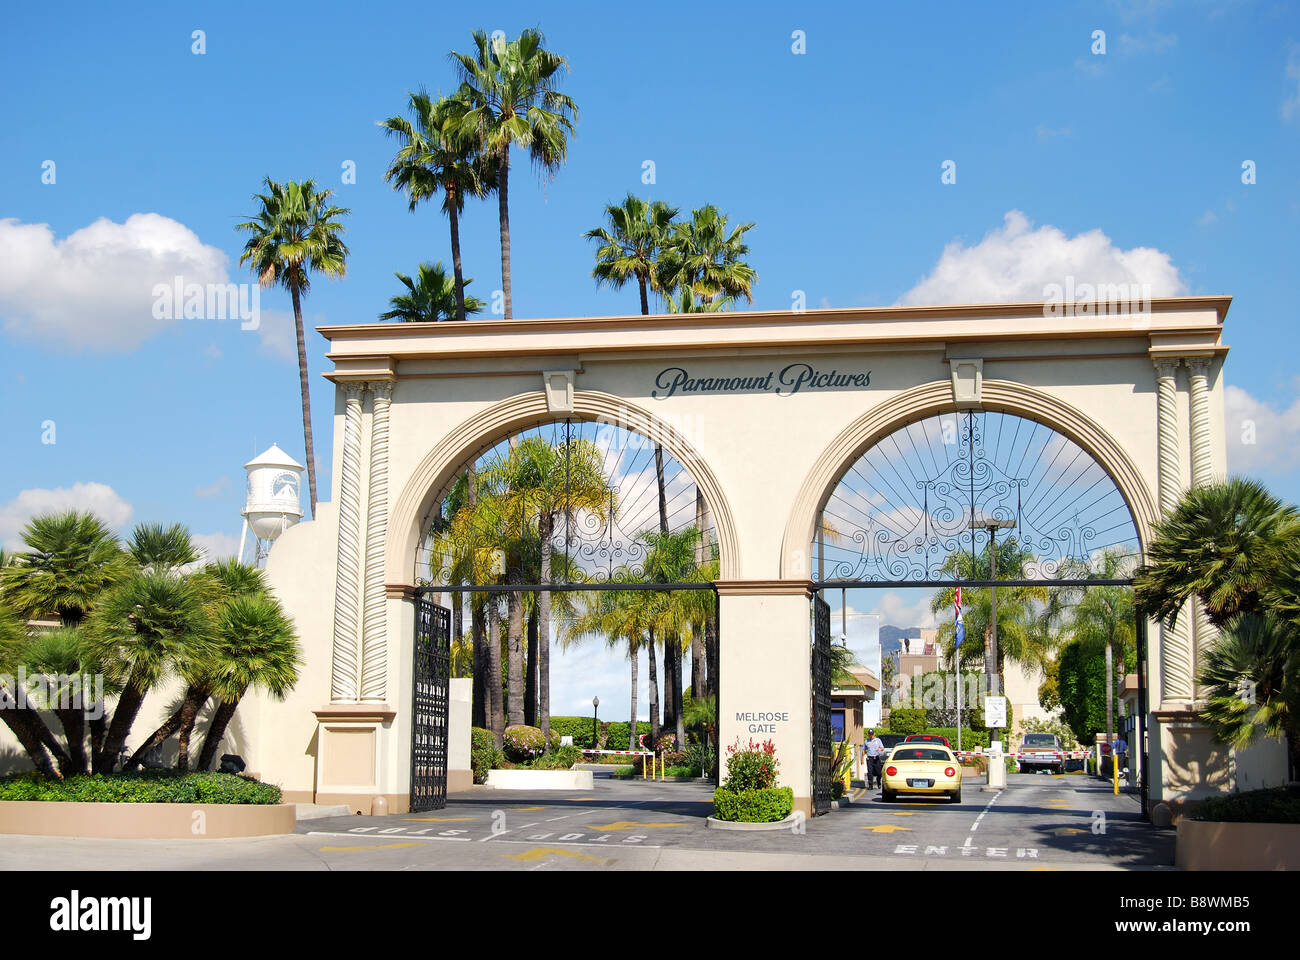 Entrance to Paramount Studios, Melrose Avenue, Hollywood, Los Angeles, California, United States of America Stock Photo